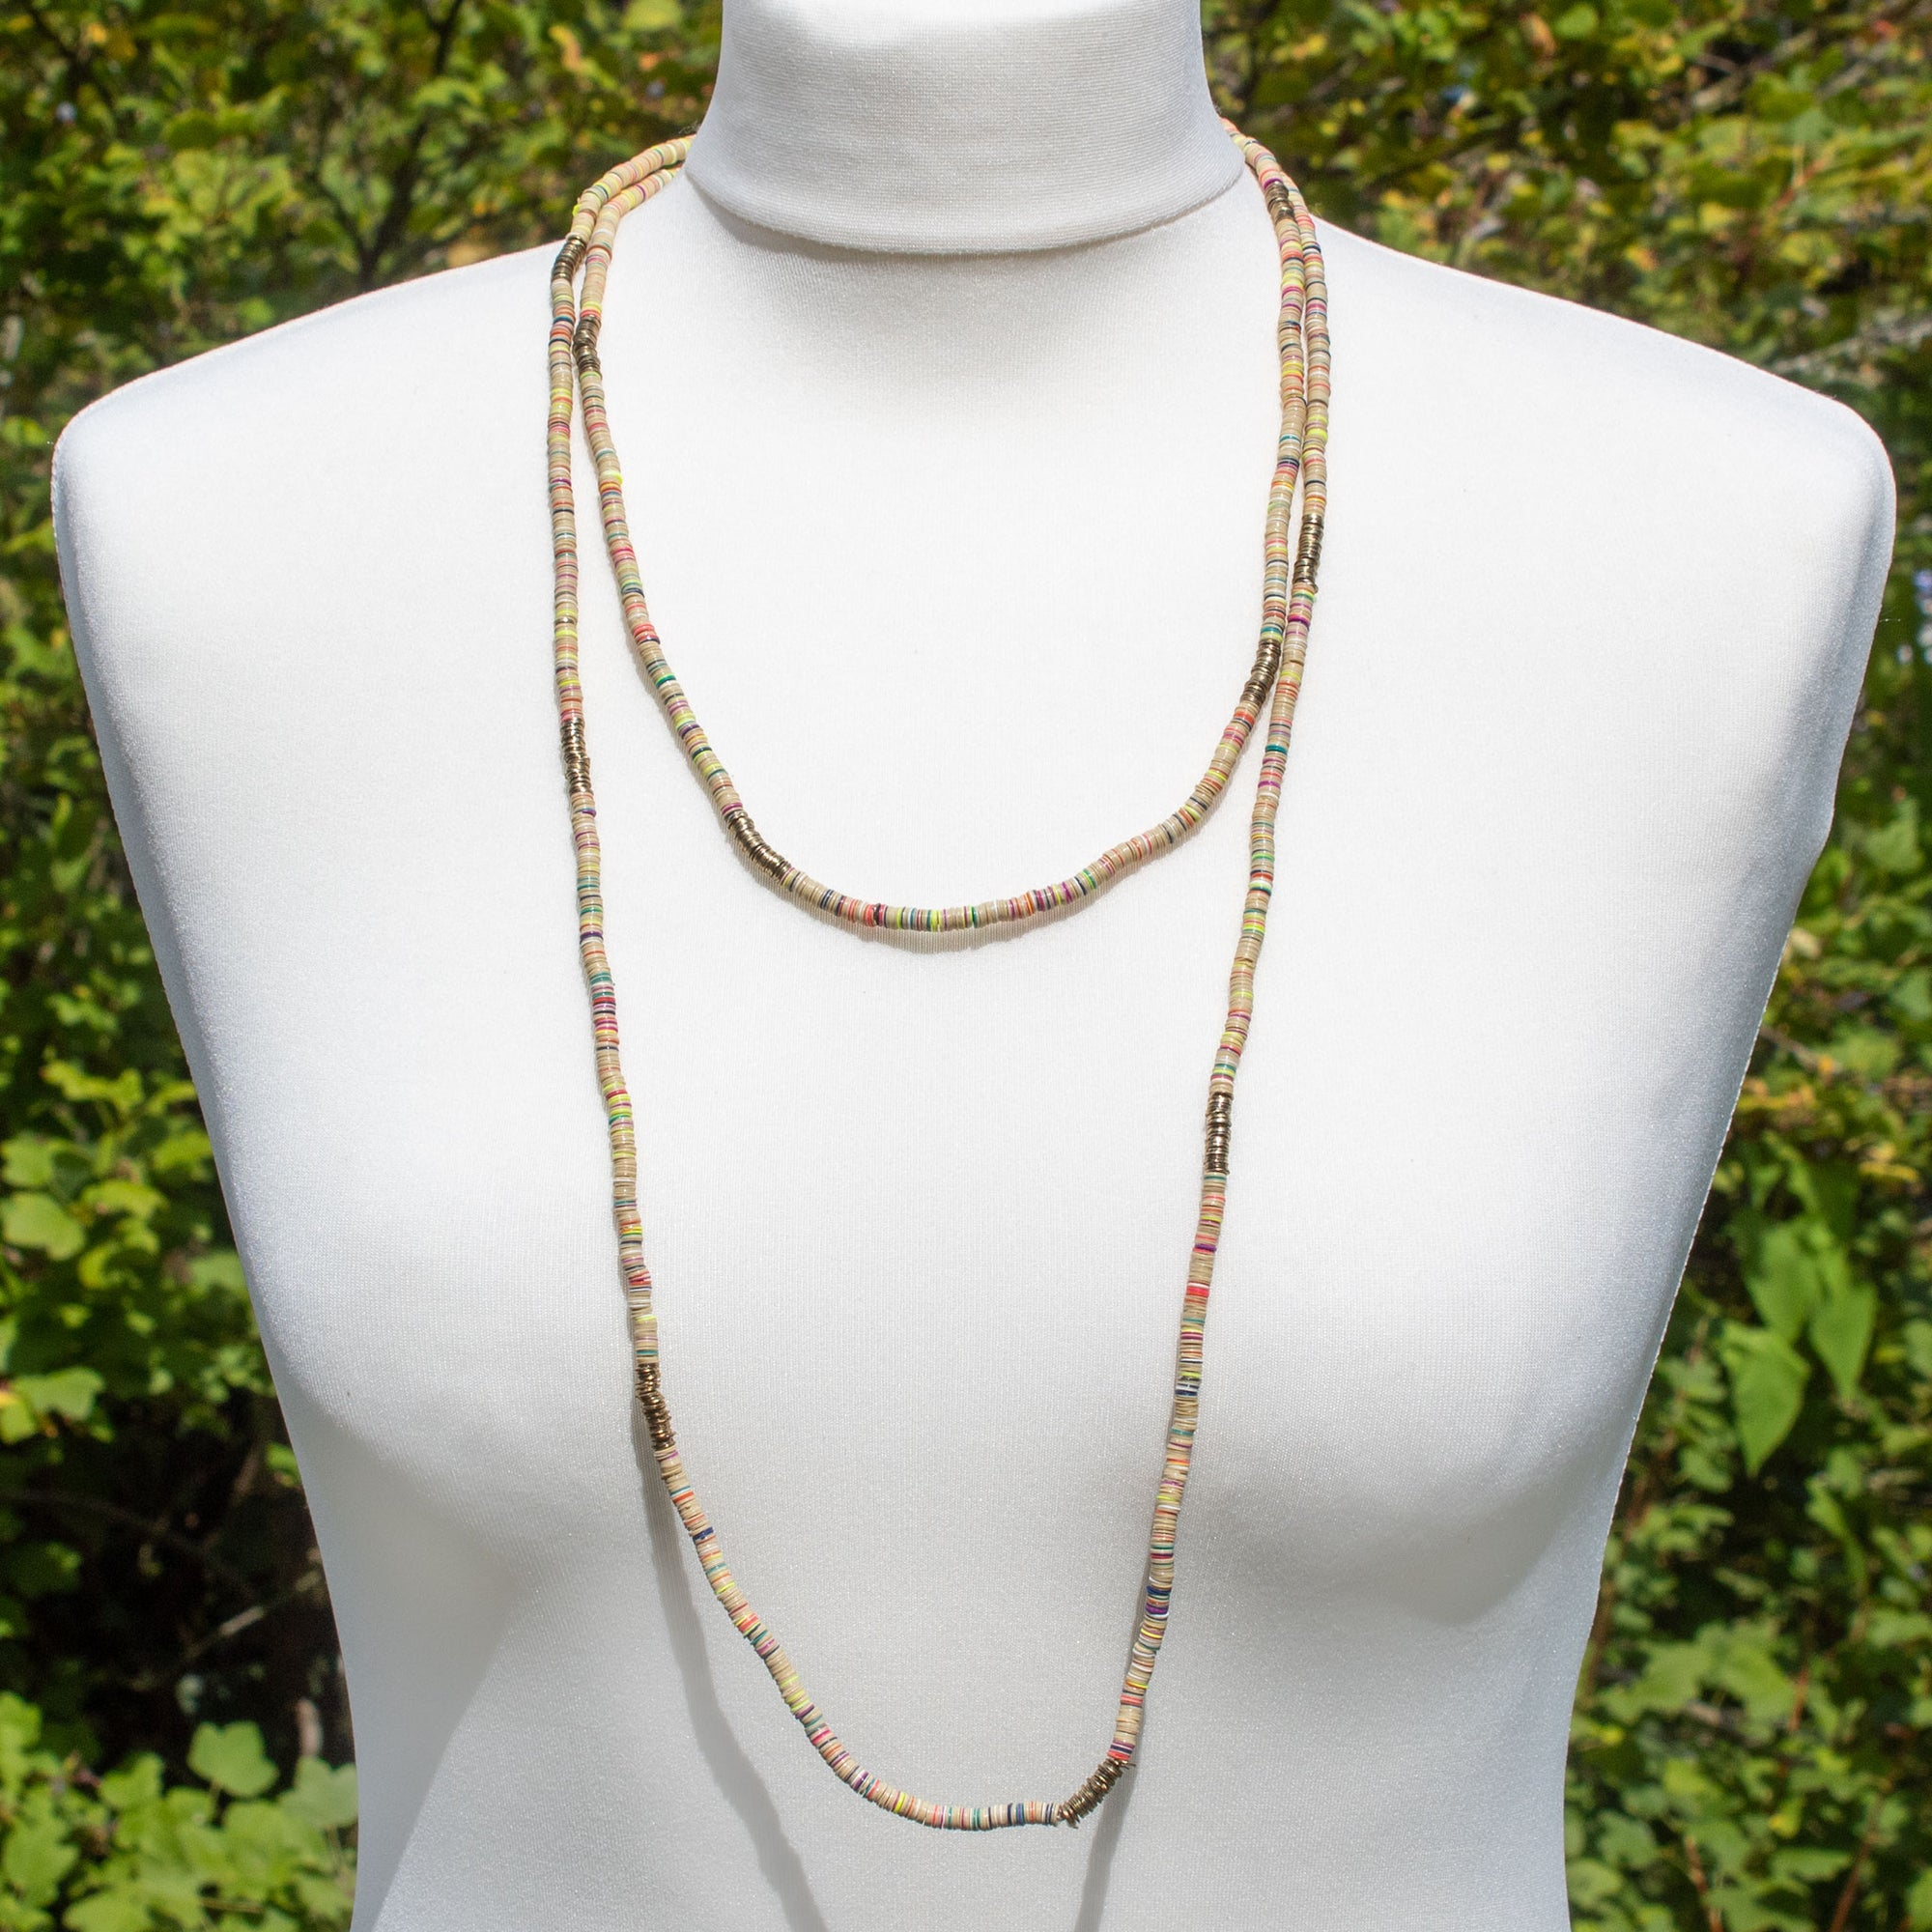 Extra-Long Cream Sequin Necklace | Necklace - The Naughty Shrew